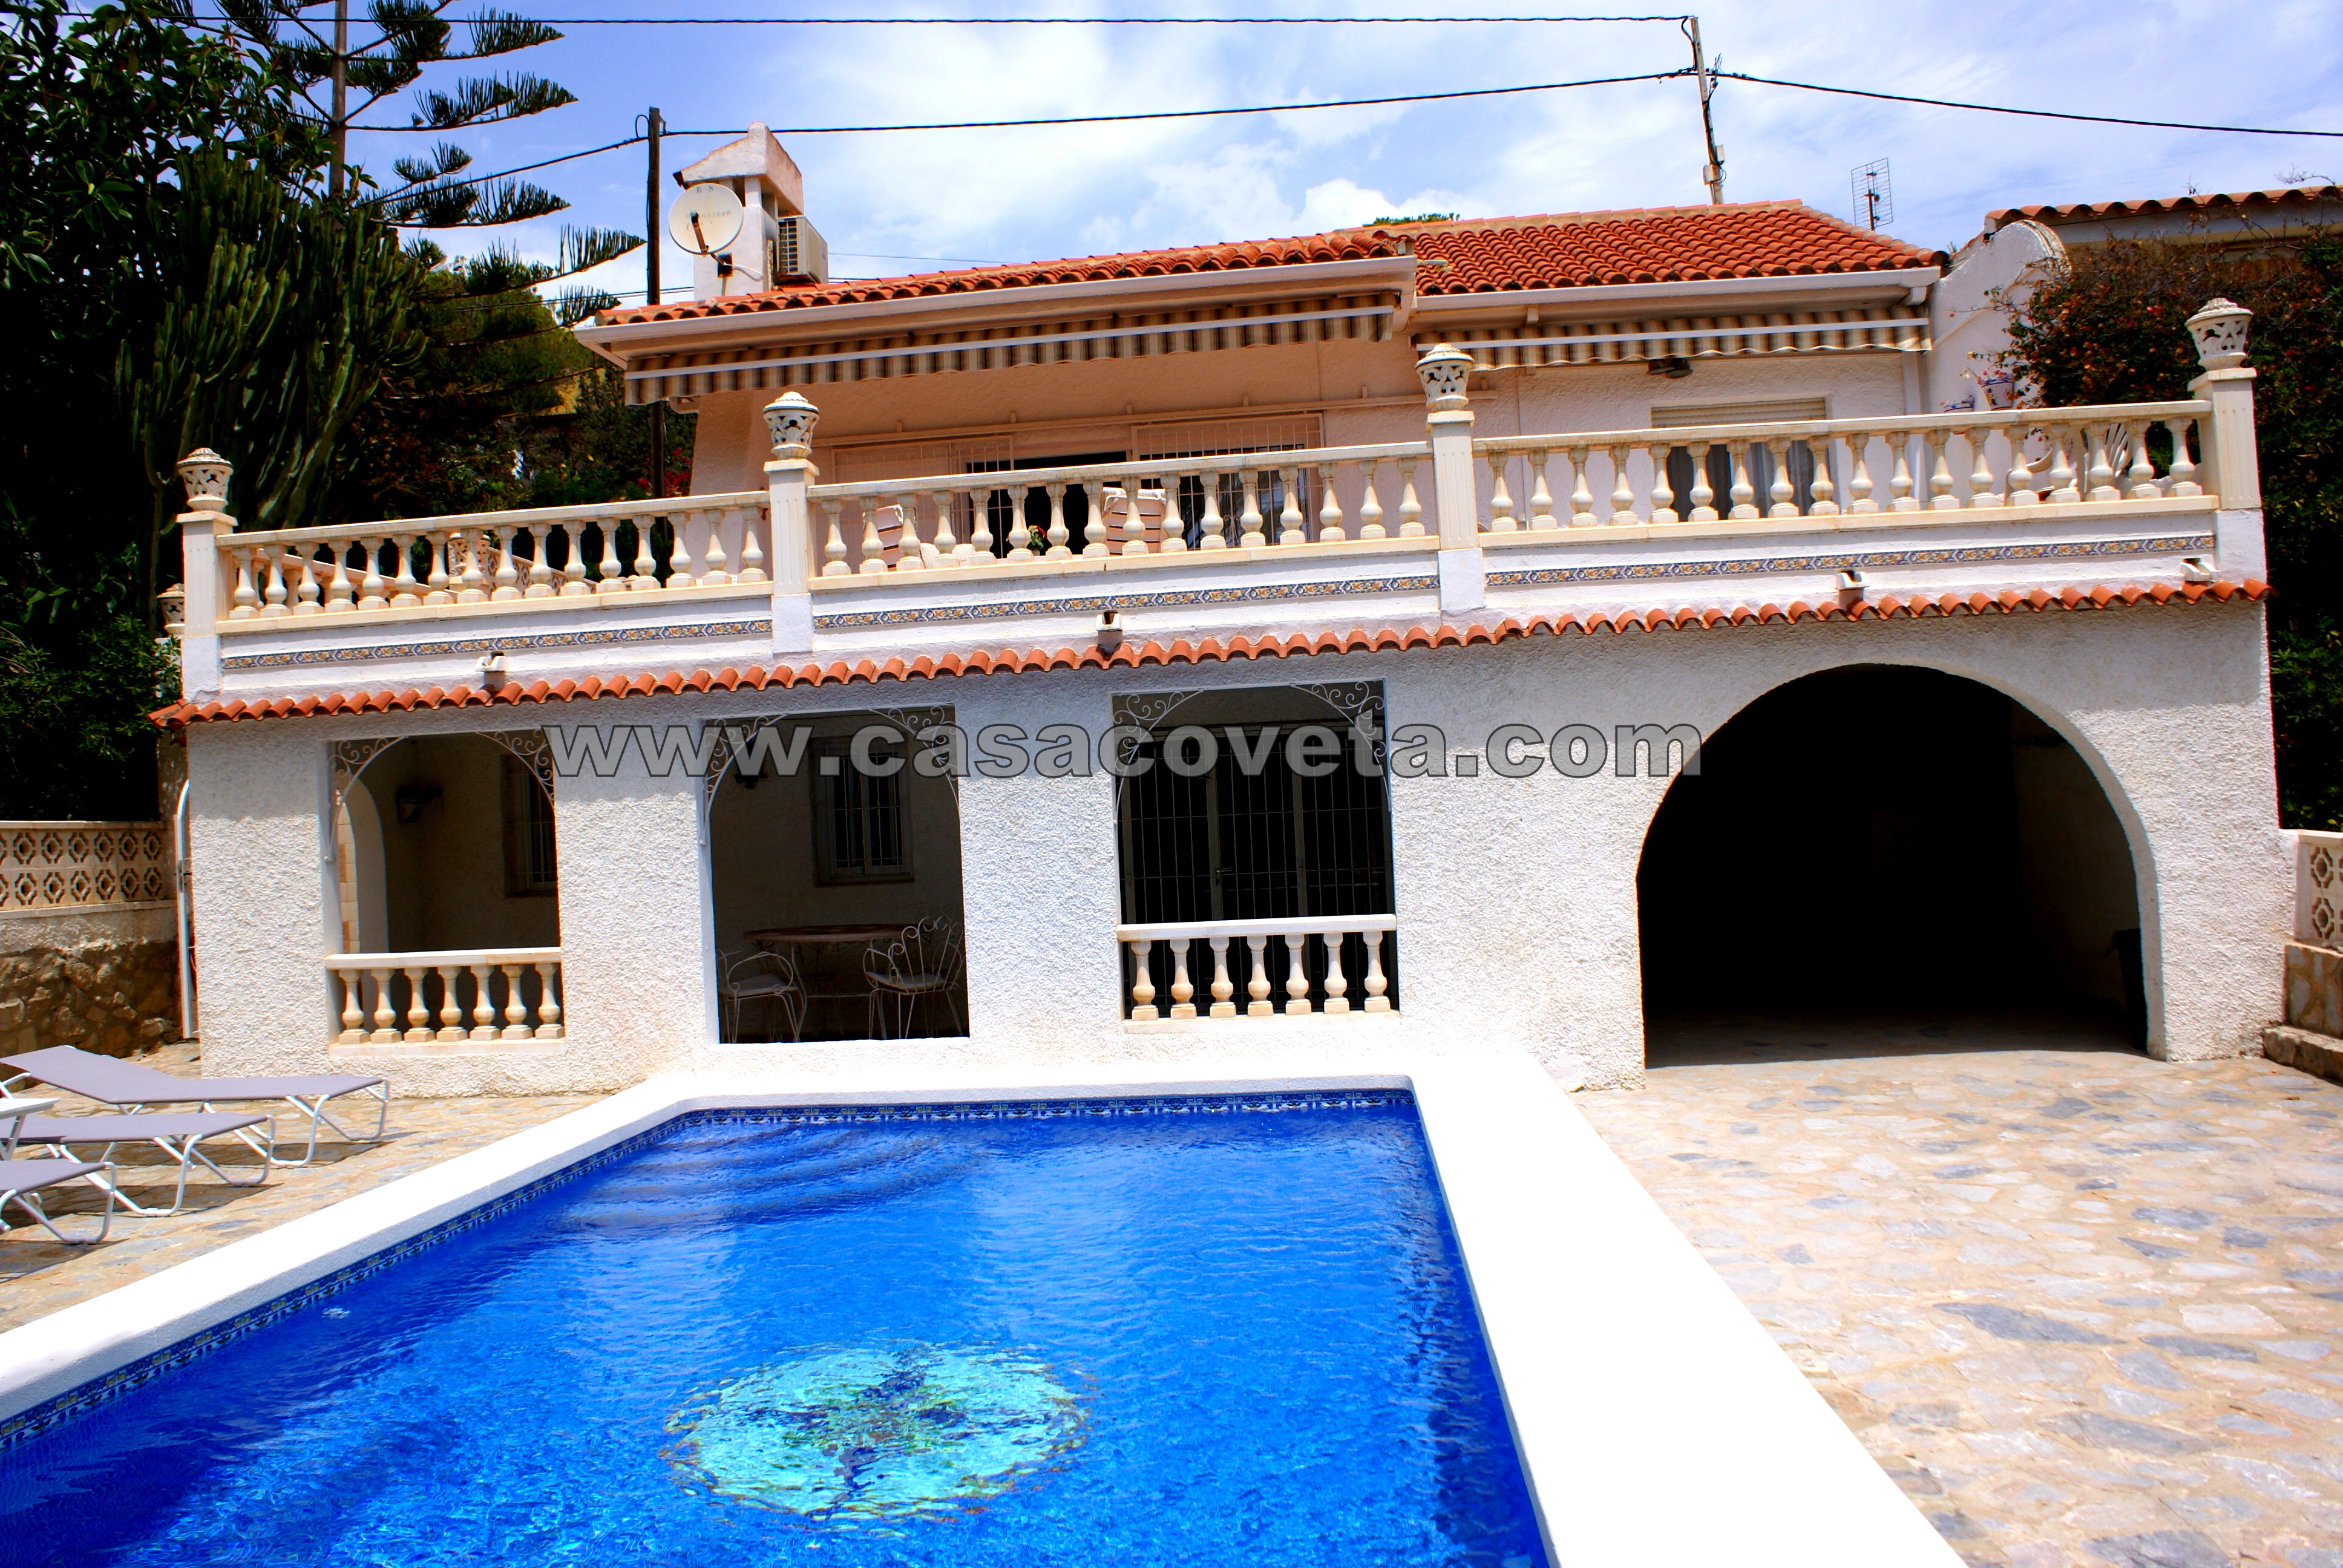 Villa with sea views, pool, 4 bedrooms with air conditioning and an independent apartment with air conditioning Ref: 454